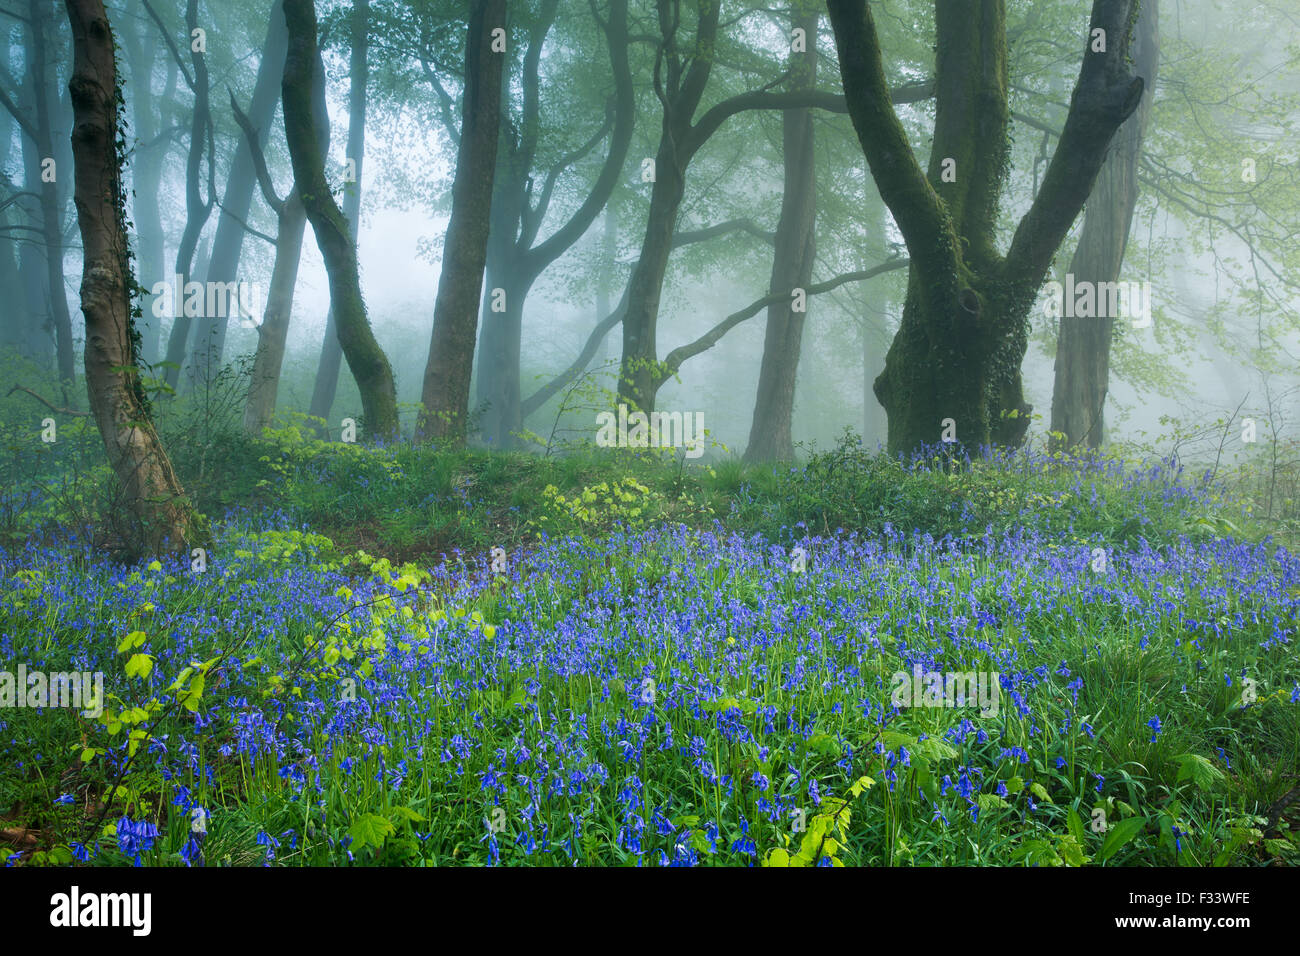 bluebells in the misty woods near Minterne Magna at dawn, Dorset, England, UK - Stock Image